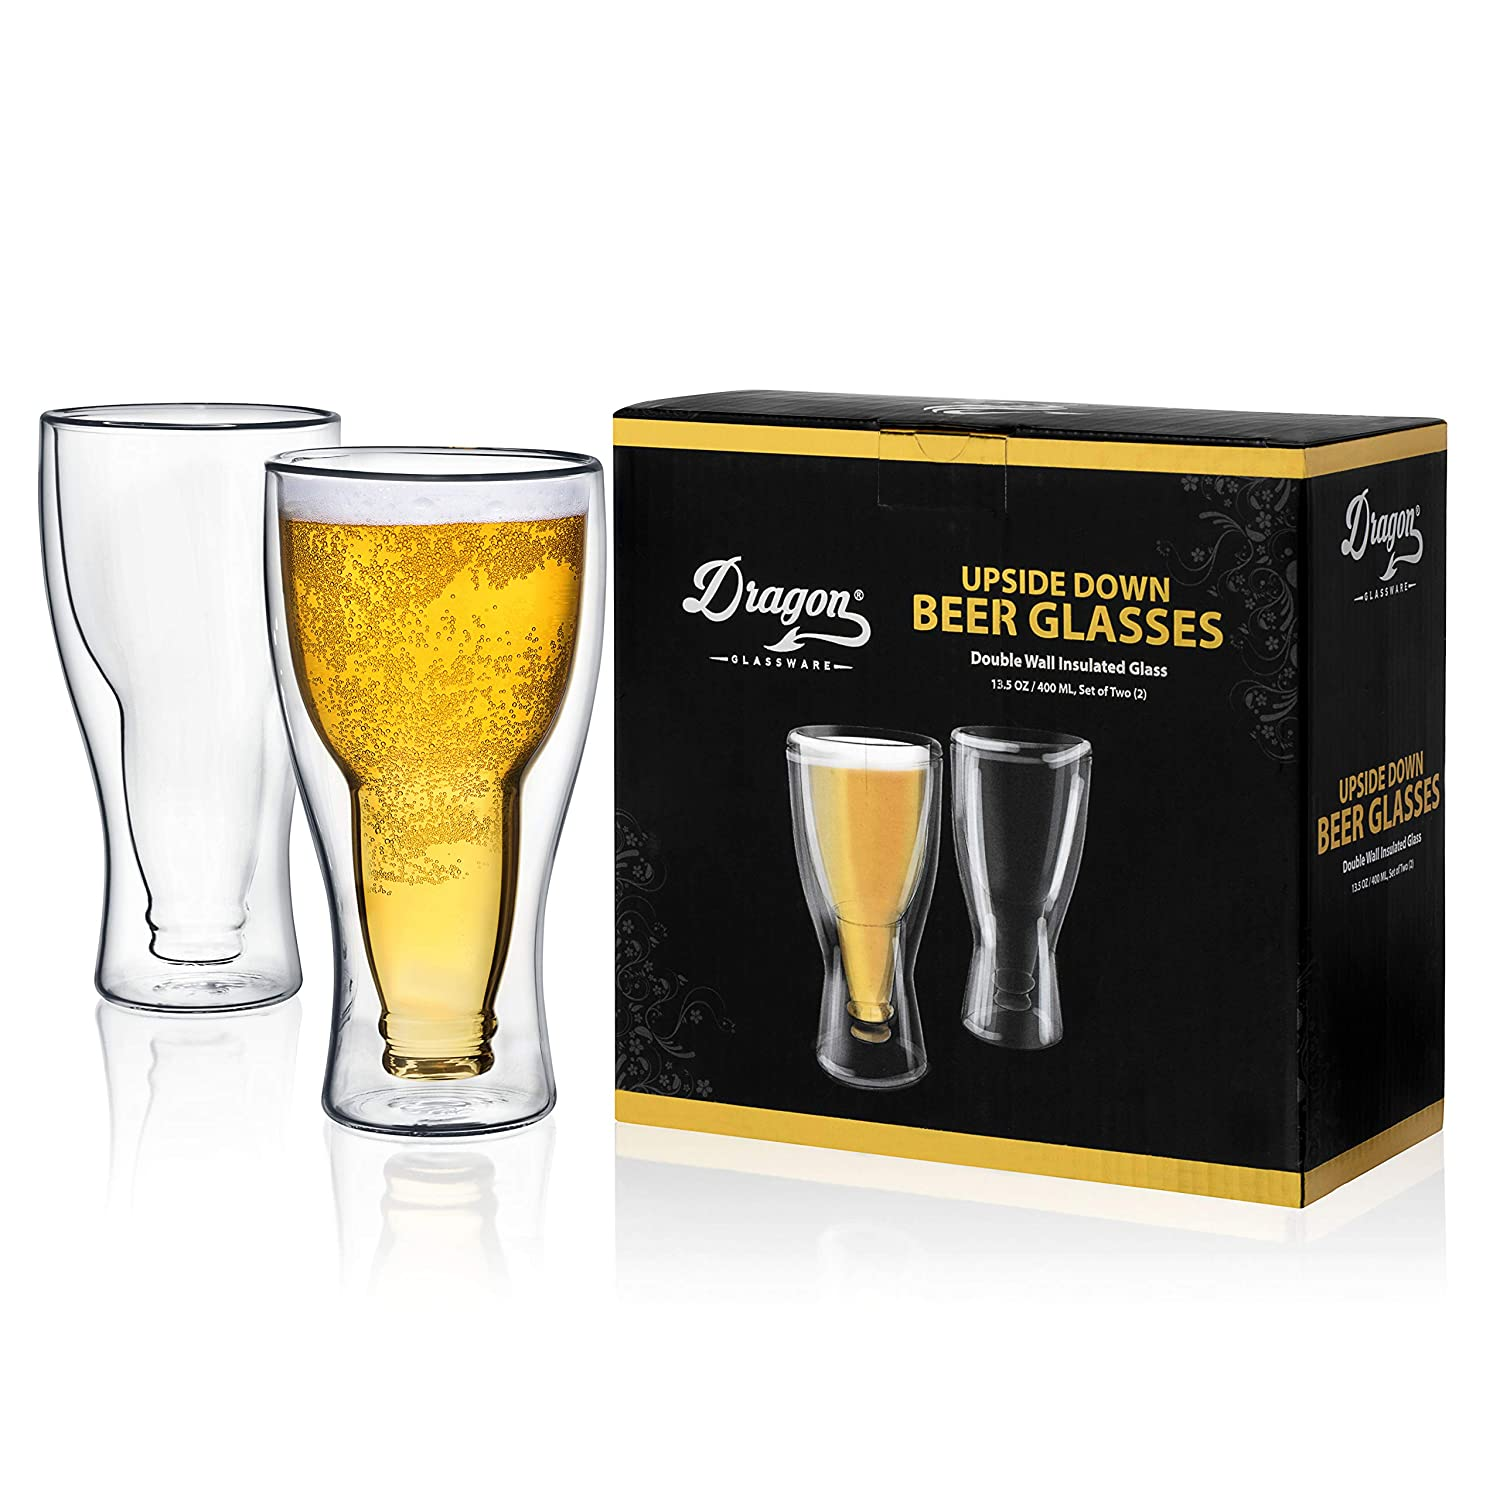 Dragon Glassware Beer Glass Premium Designer Mug with Insulated Double-Walled Design Gift Boxed 400 ml